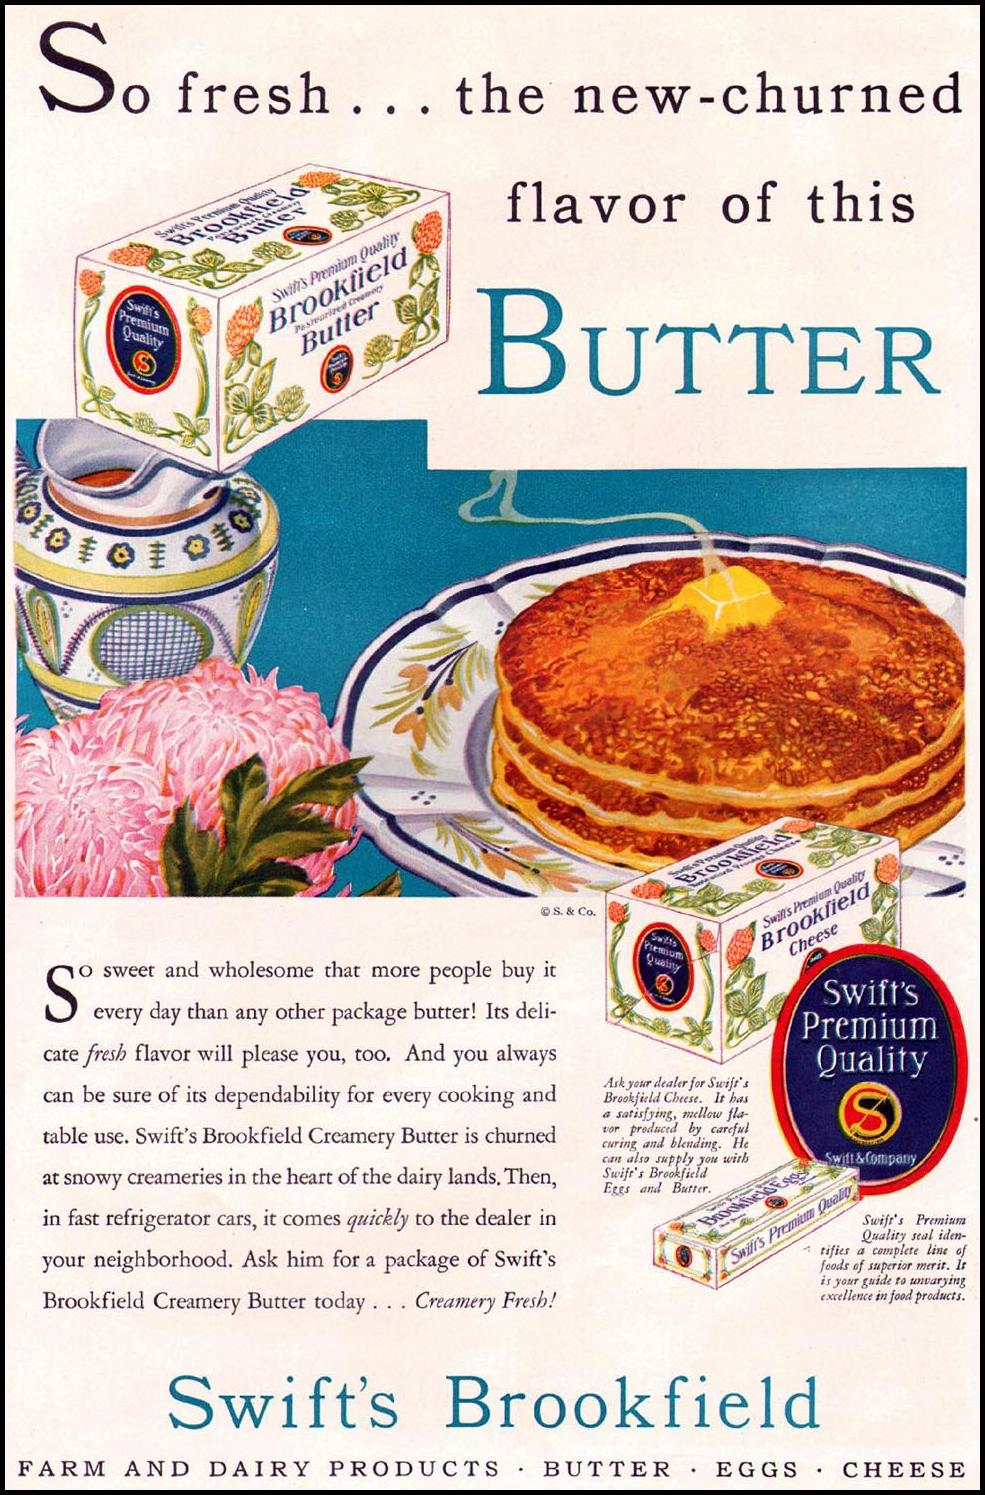 SWIFT'S BROOKFIELD BUTTER